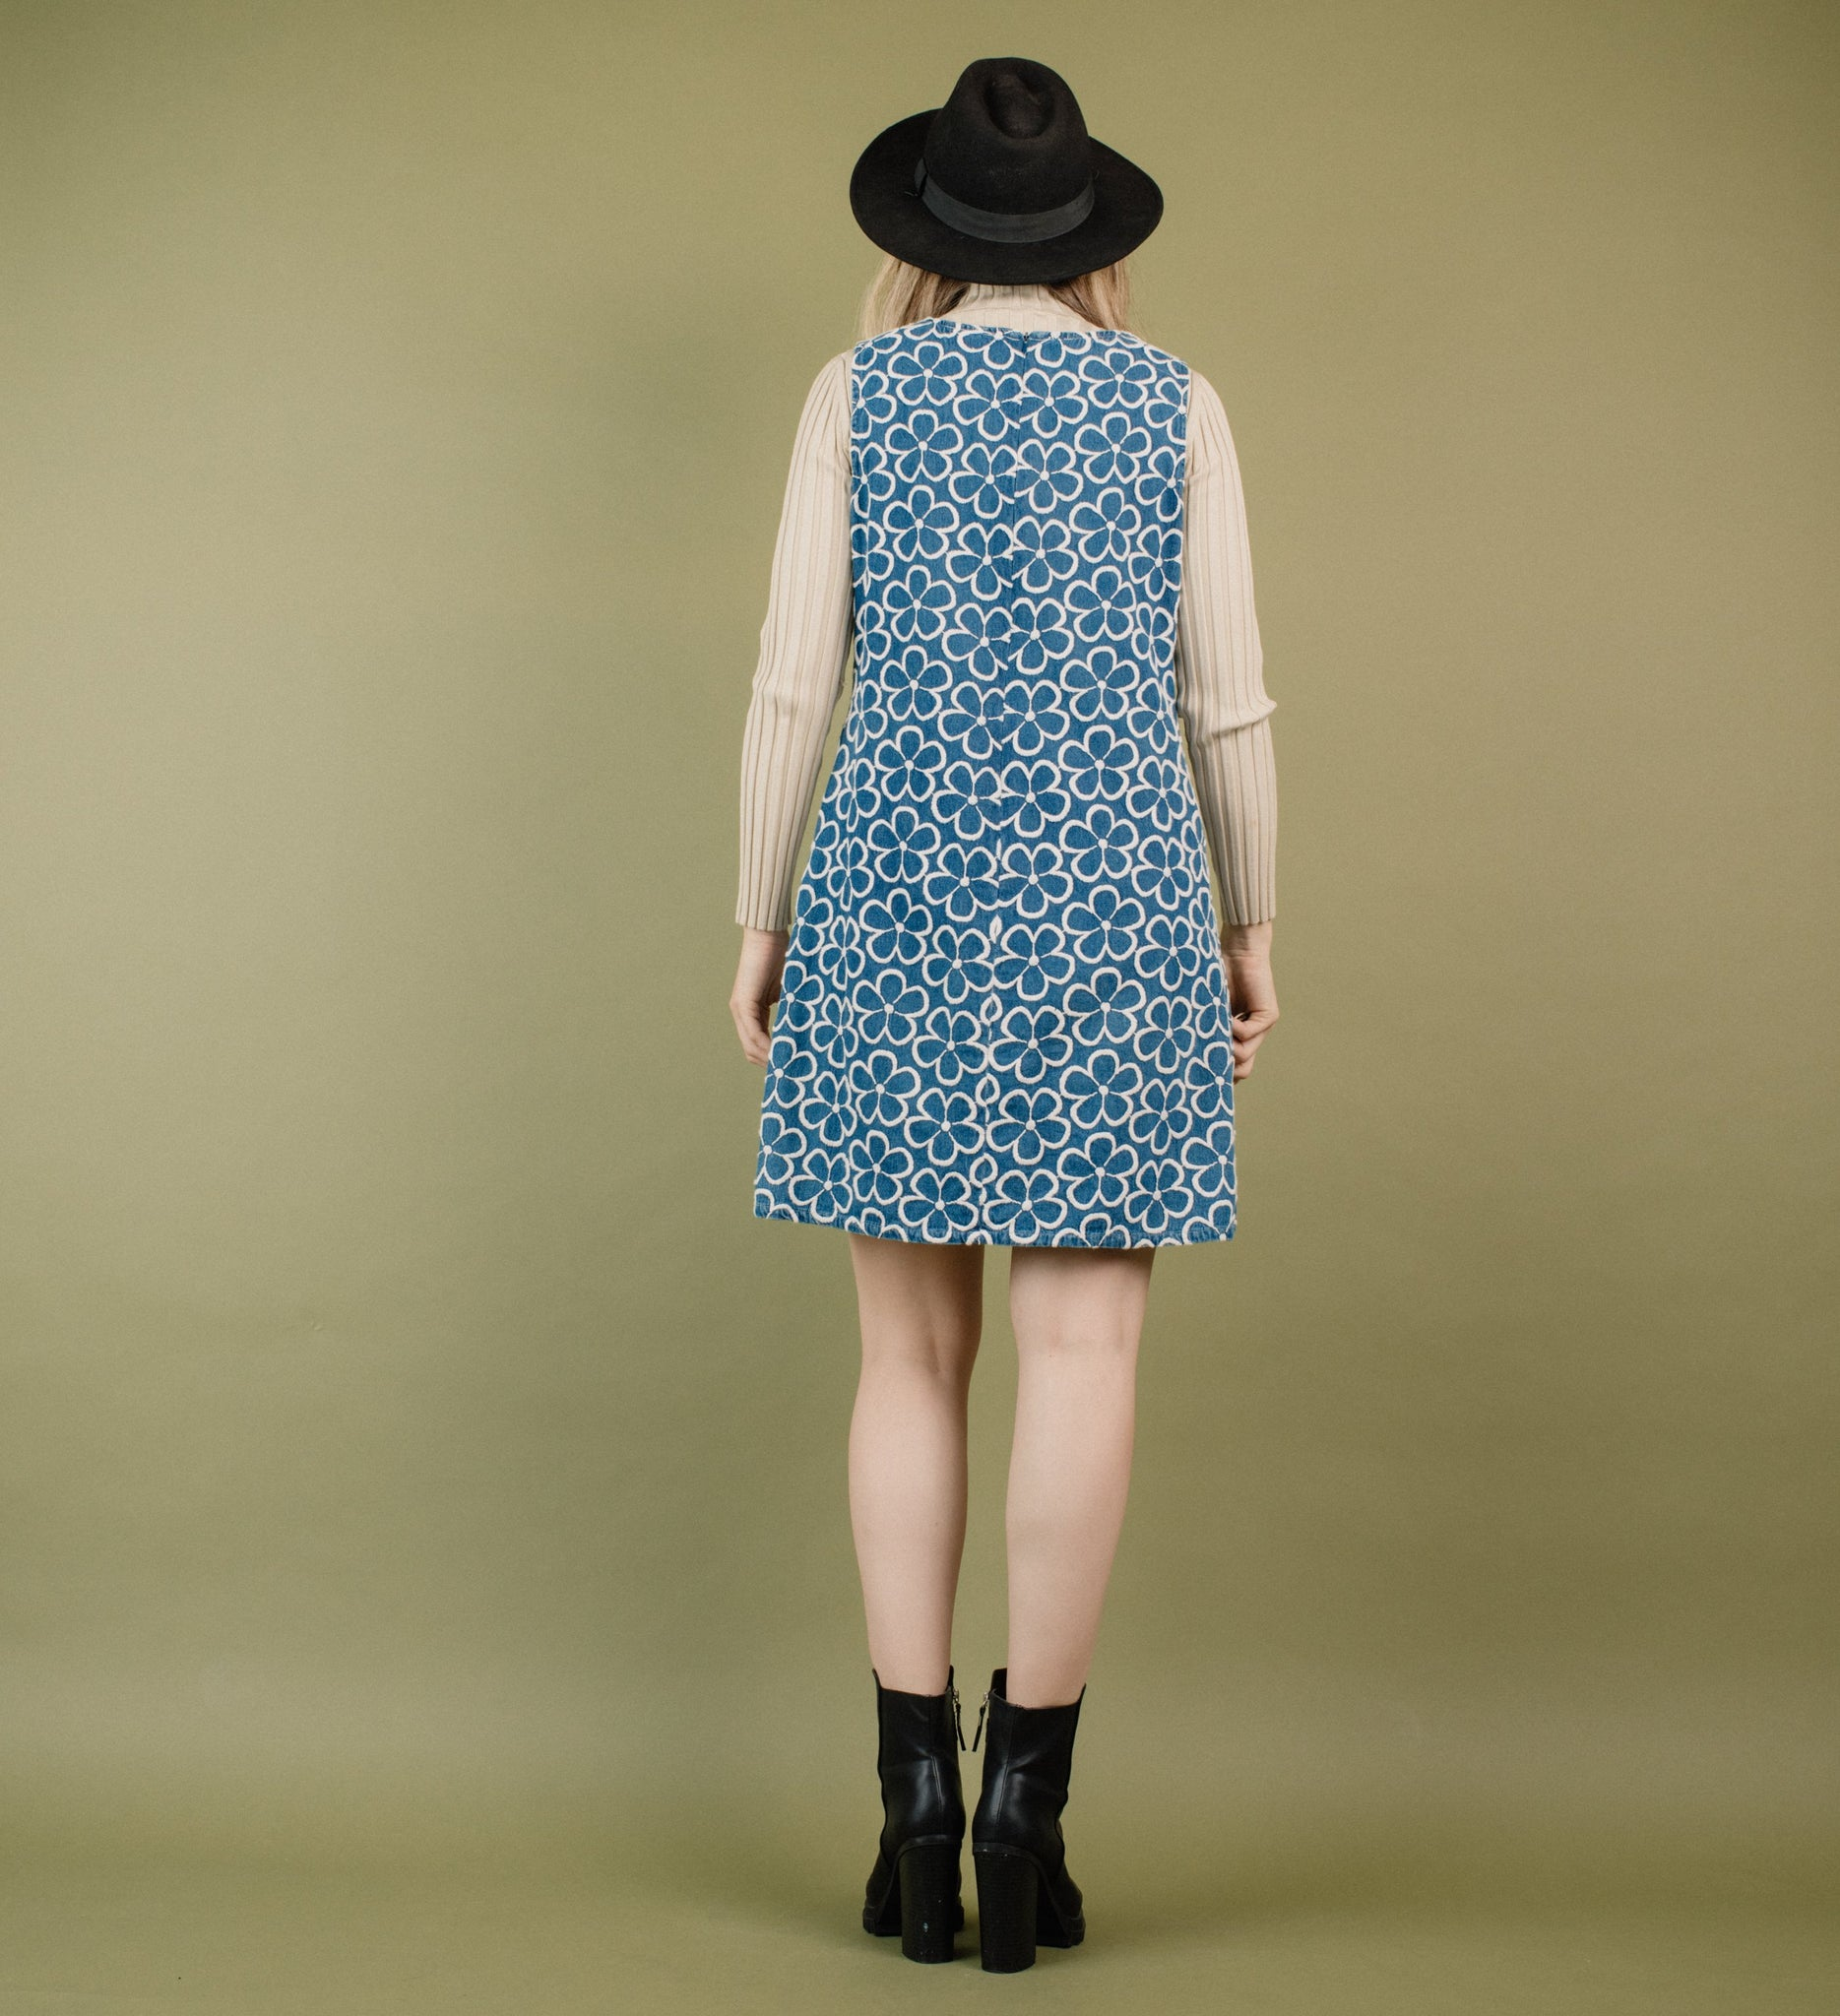 Vintage Floral Embroidered Denim Dress / S - Closed Caption